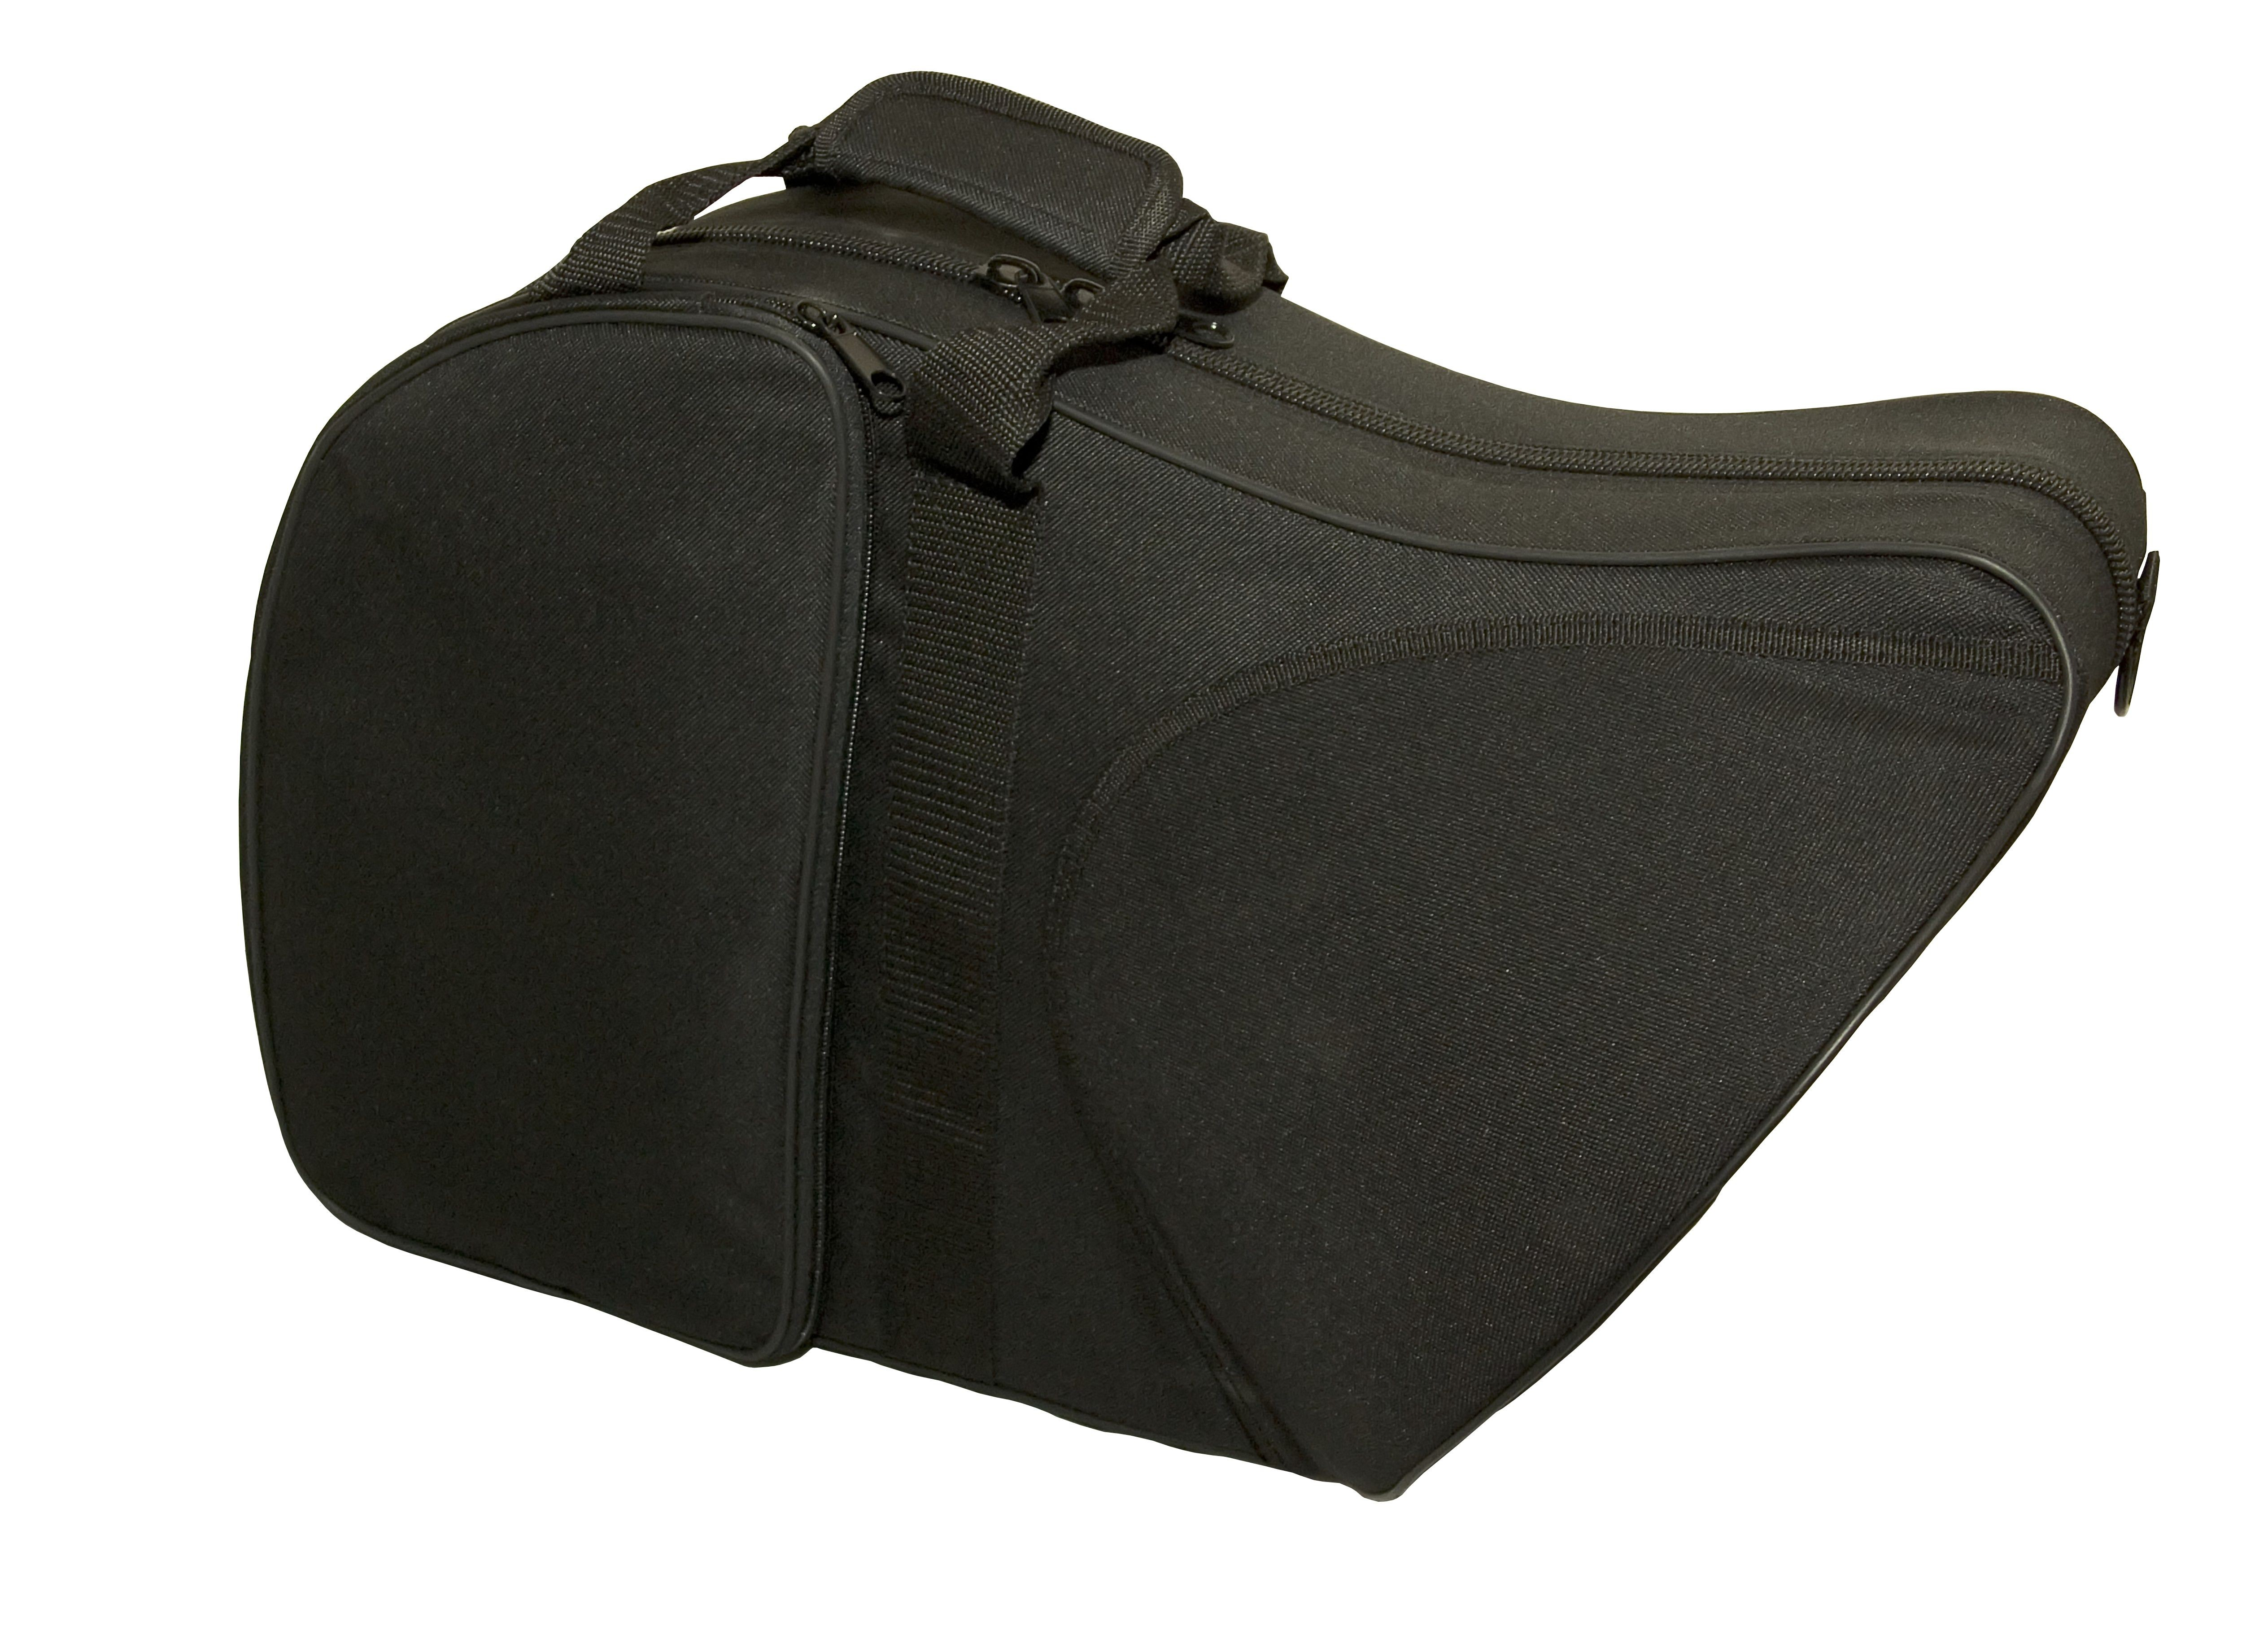 Rosetti Double French Horn Case